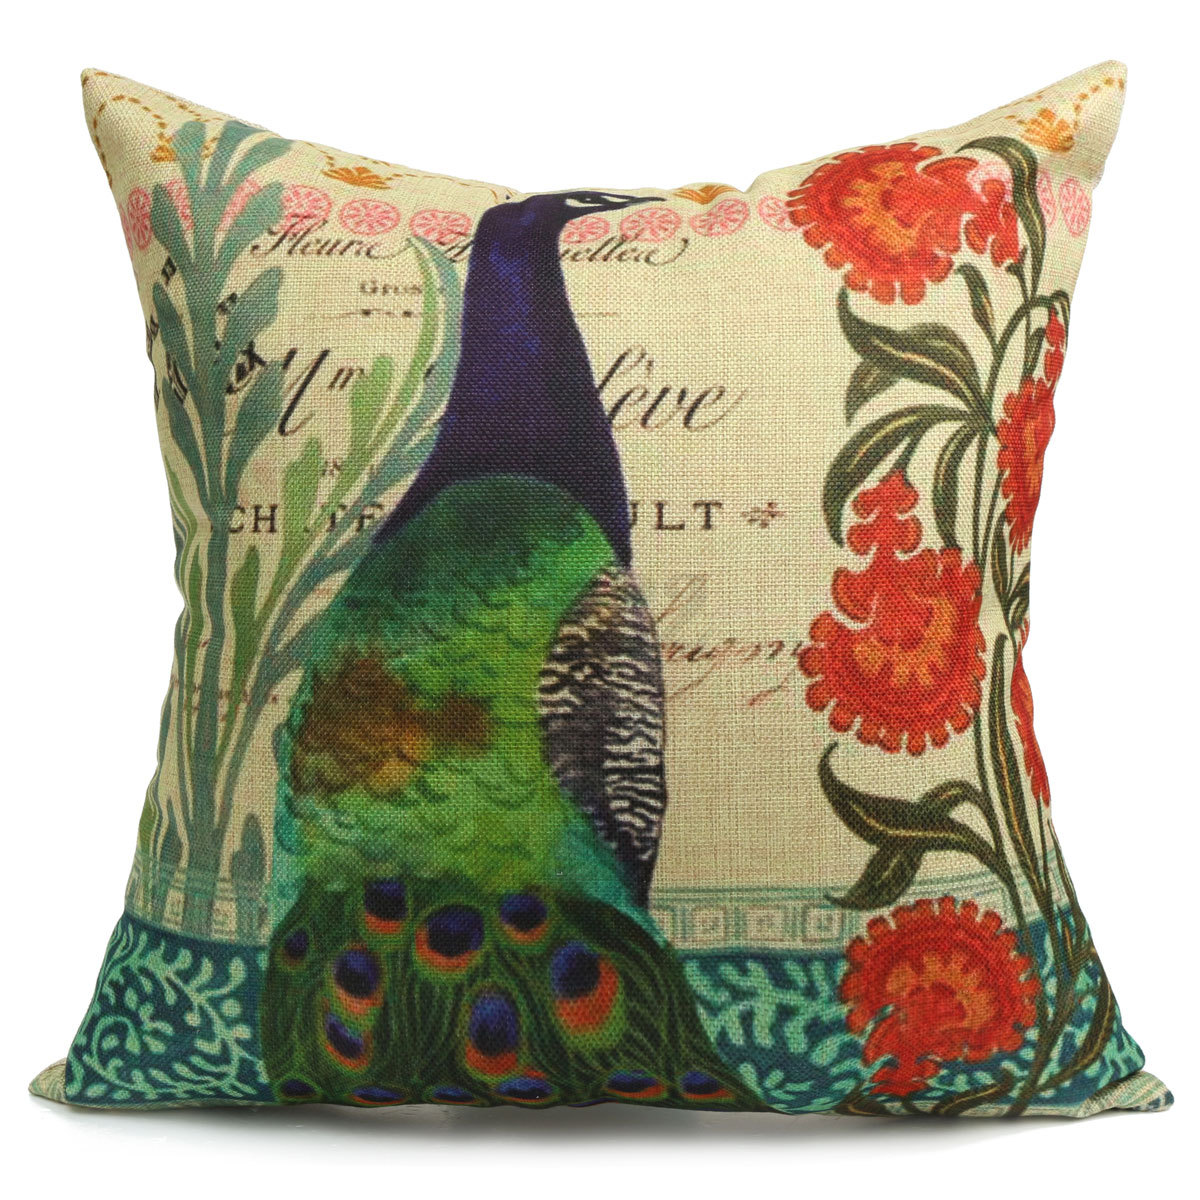 Vintage Flower Peacock Oriental Cushion Cover Decorative Sofa Throw Pillow Case eBay